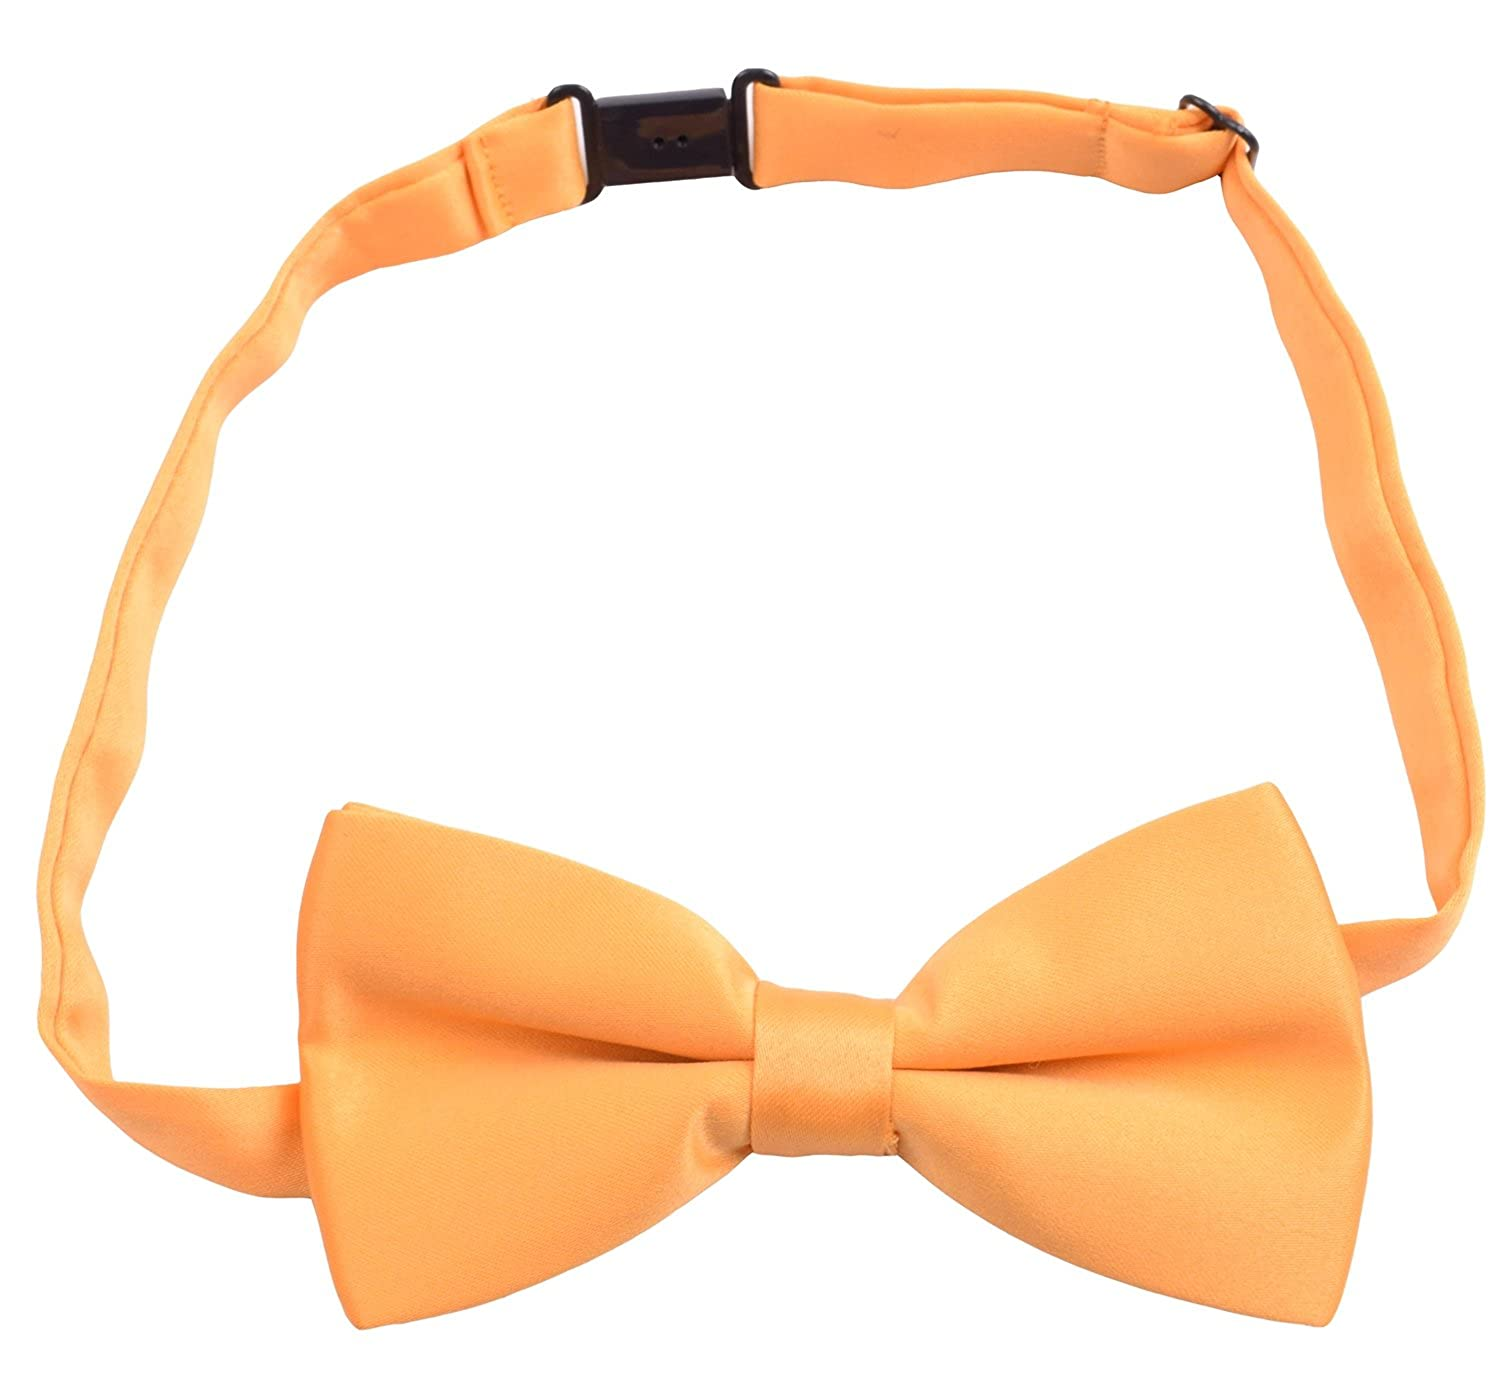 ORSKY Men's Adjustable Bow Ties lin-gj-a-M14